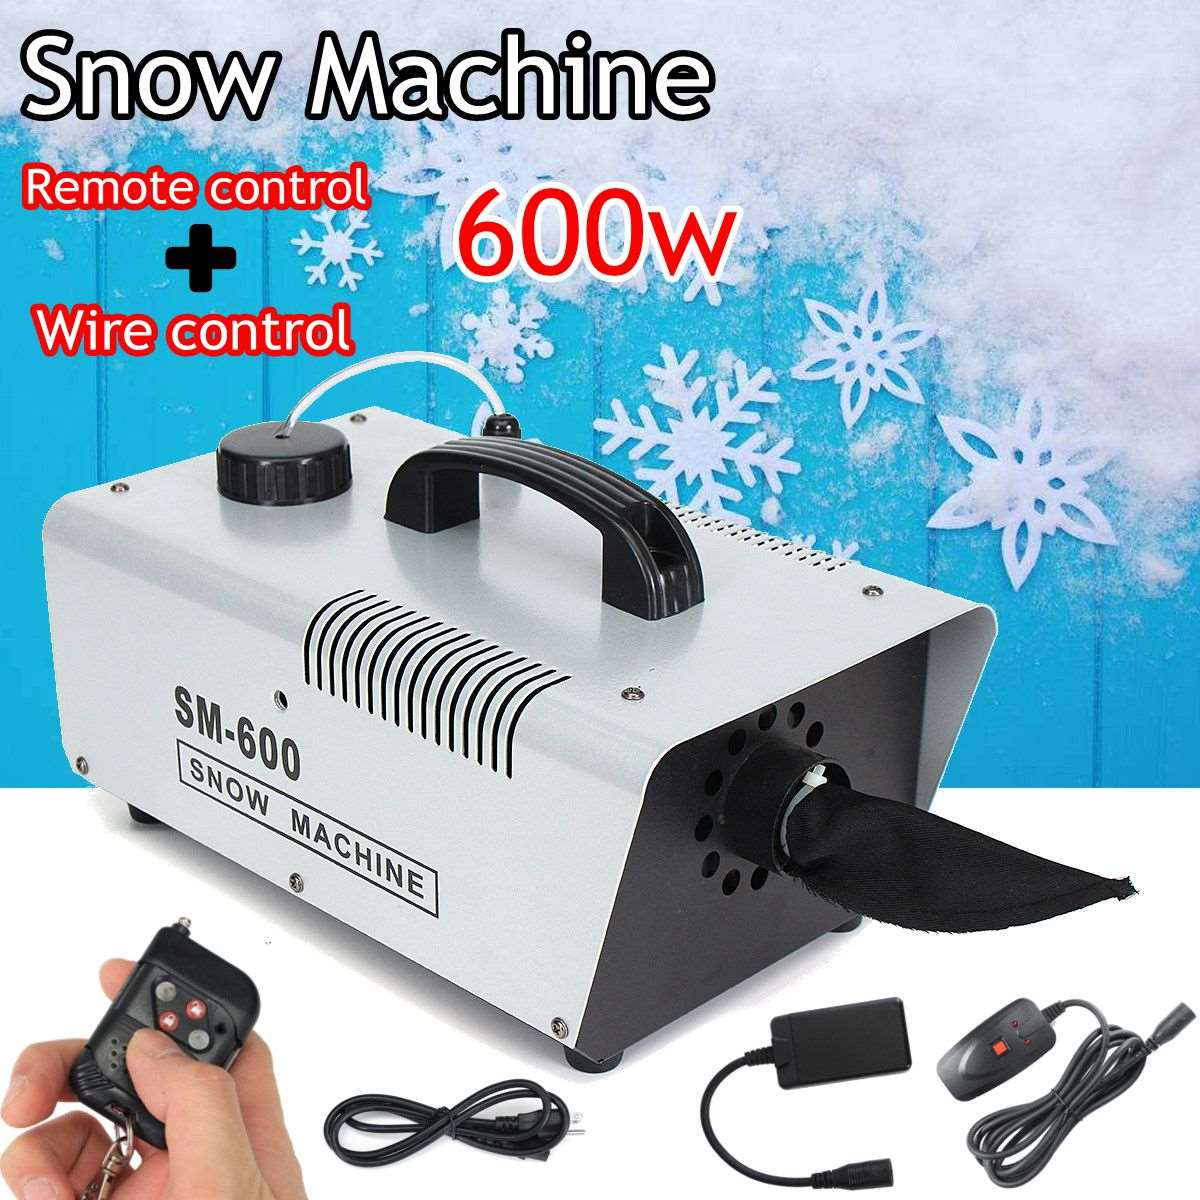 110V/220V 600W Mini Flurry Snow Machine Stage Effect + Wired Remote for Holiday Stage Snowmaker Spray Snow Soap Foam Machine oumily reflective multi purpose paracord nylon rope cord reflective grey 30m 140kg page 4